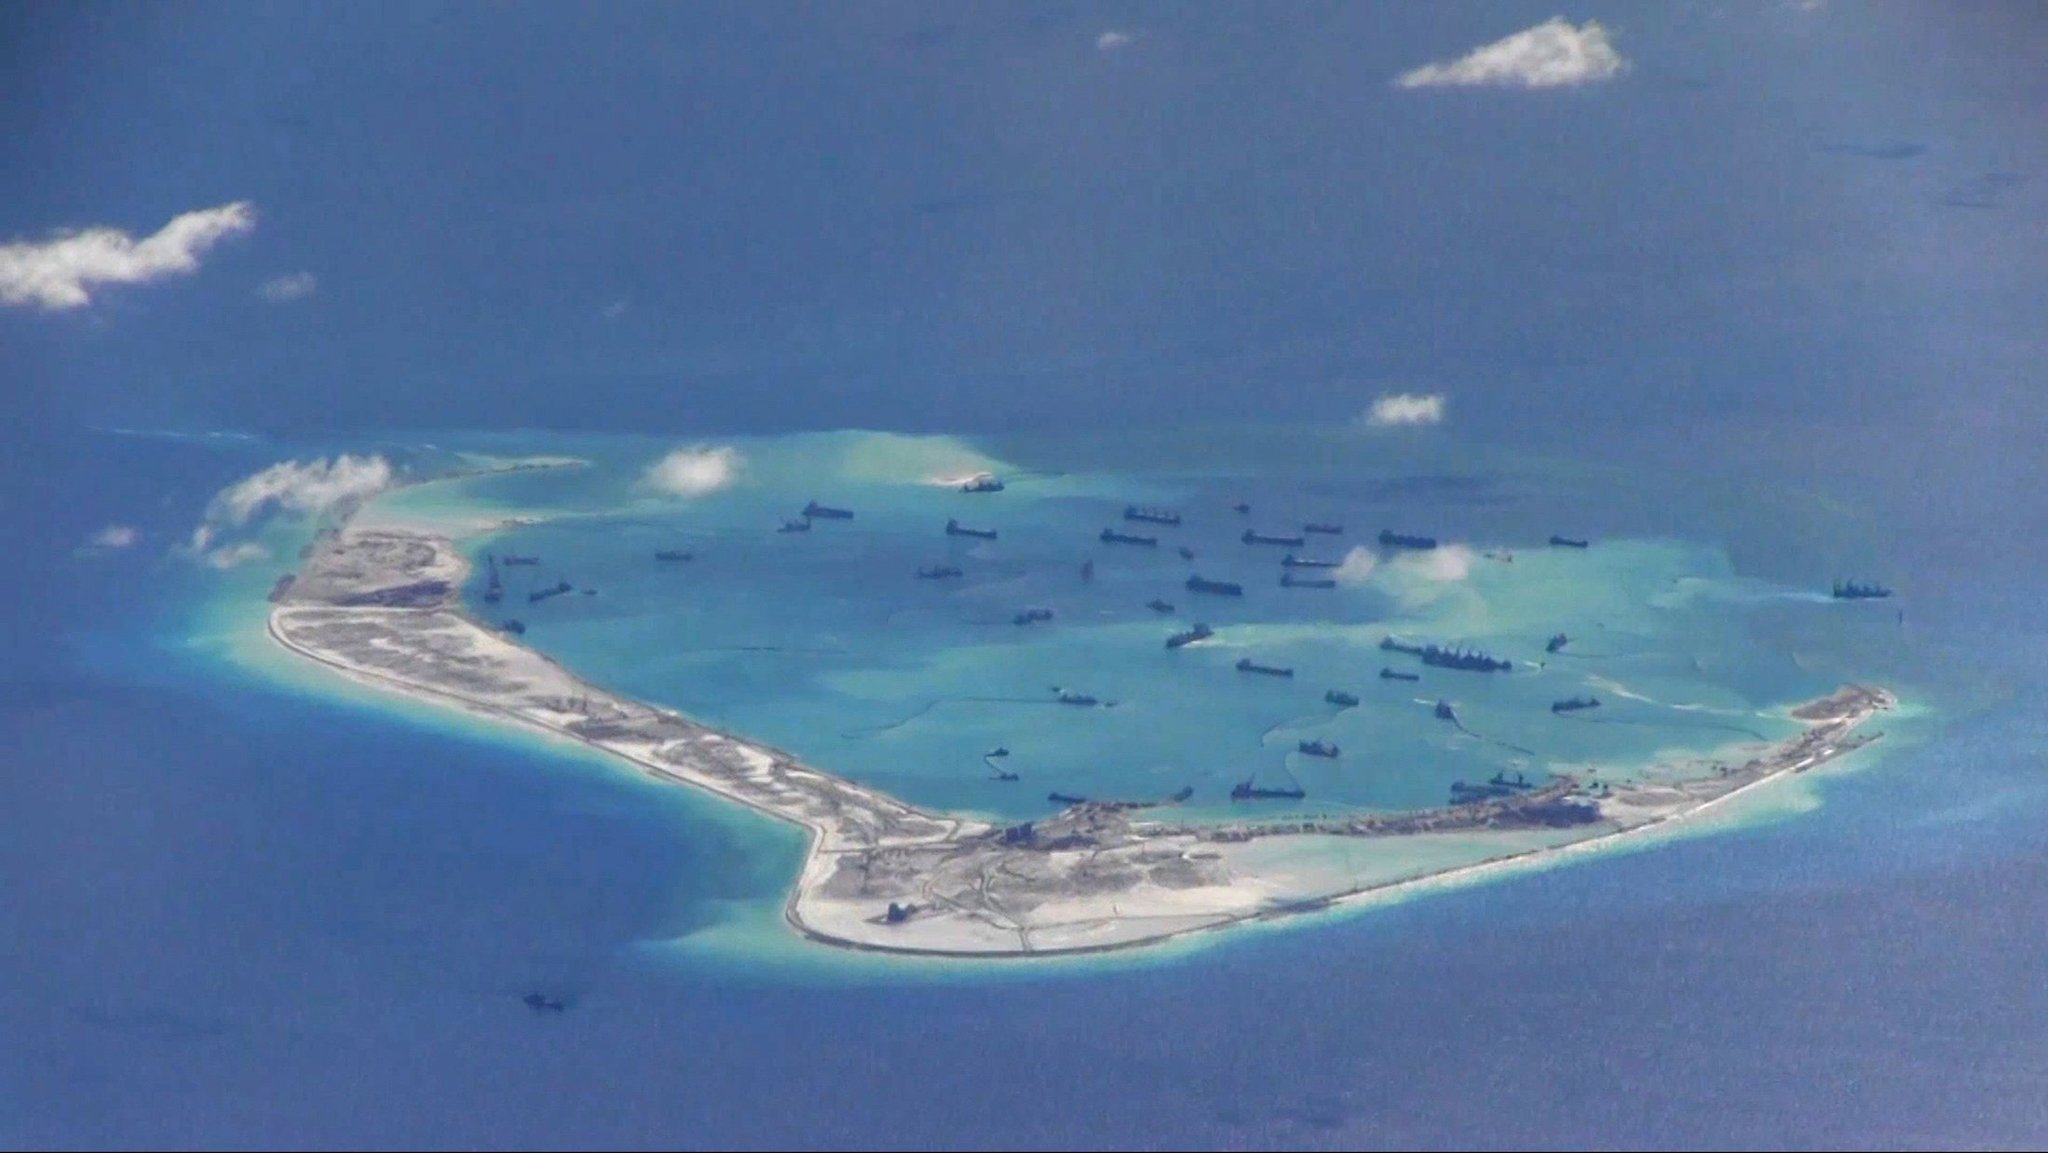 US Provides Allies With 'Moral High Ground' in Propaganda War With China